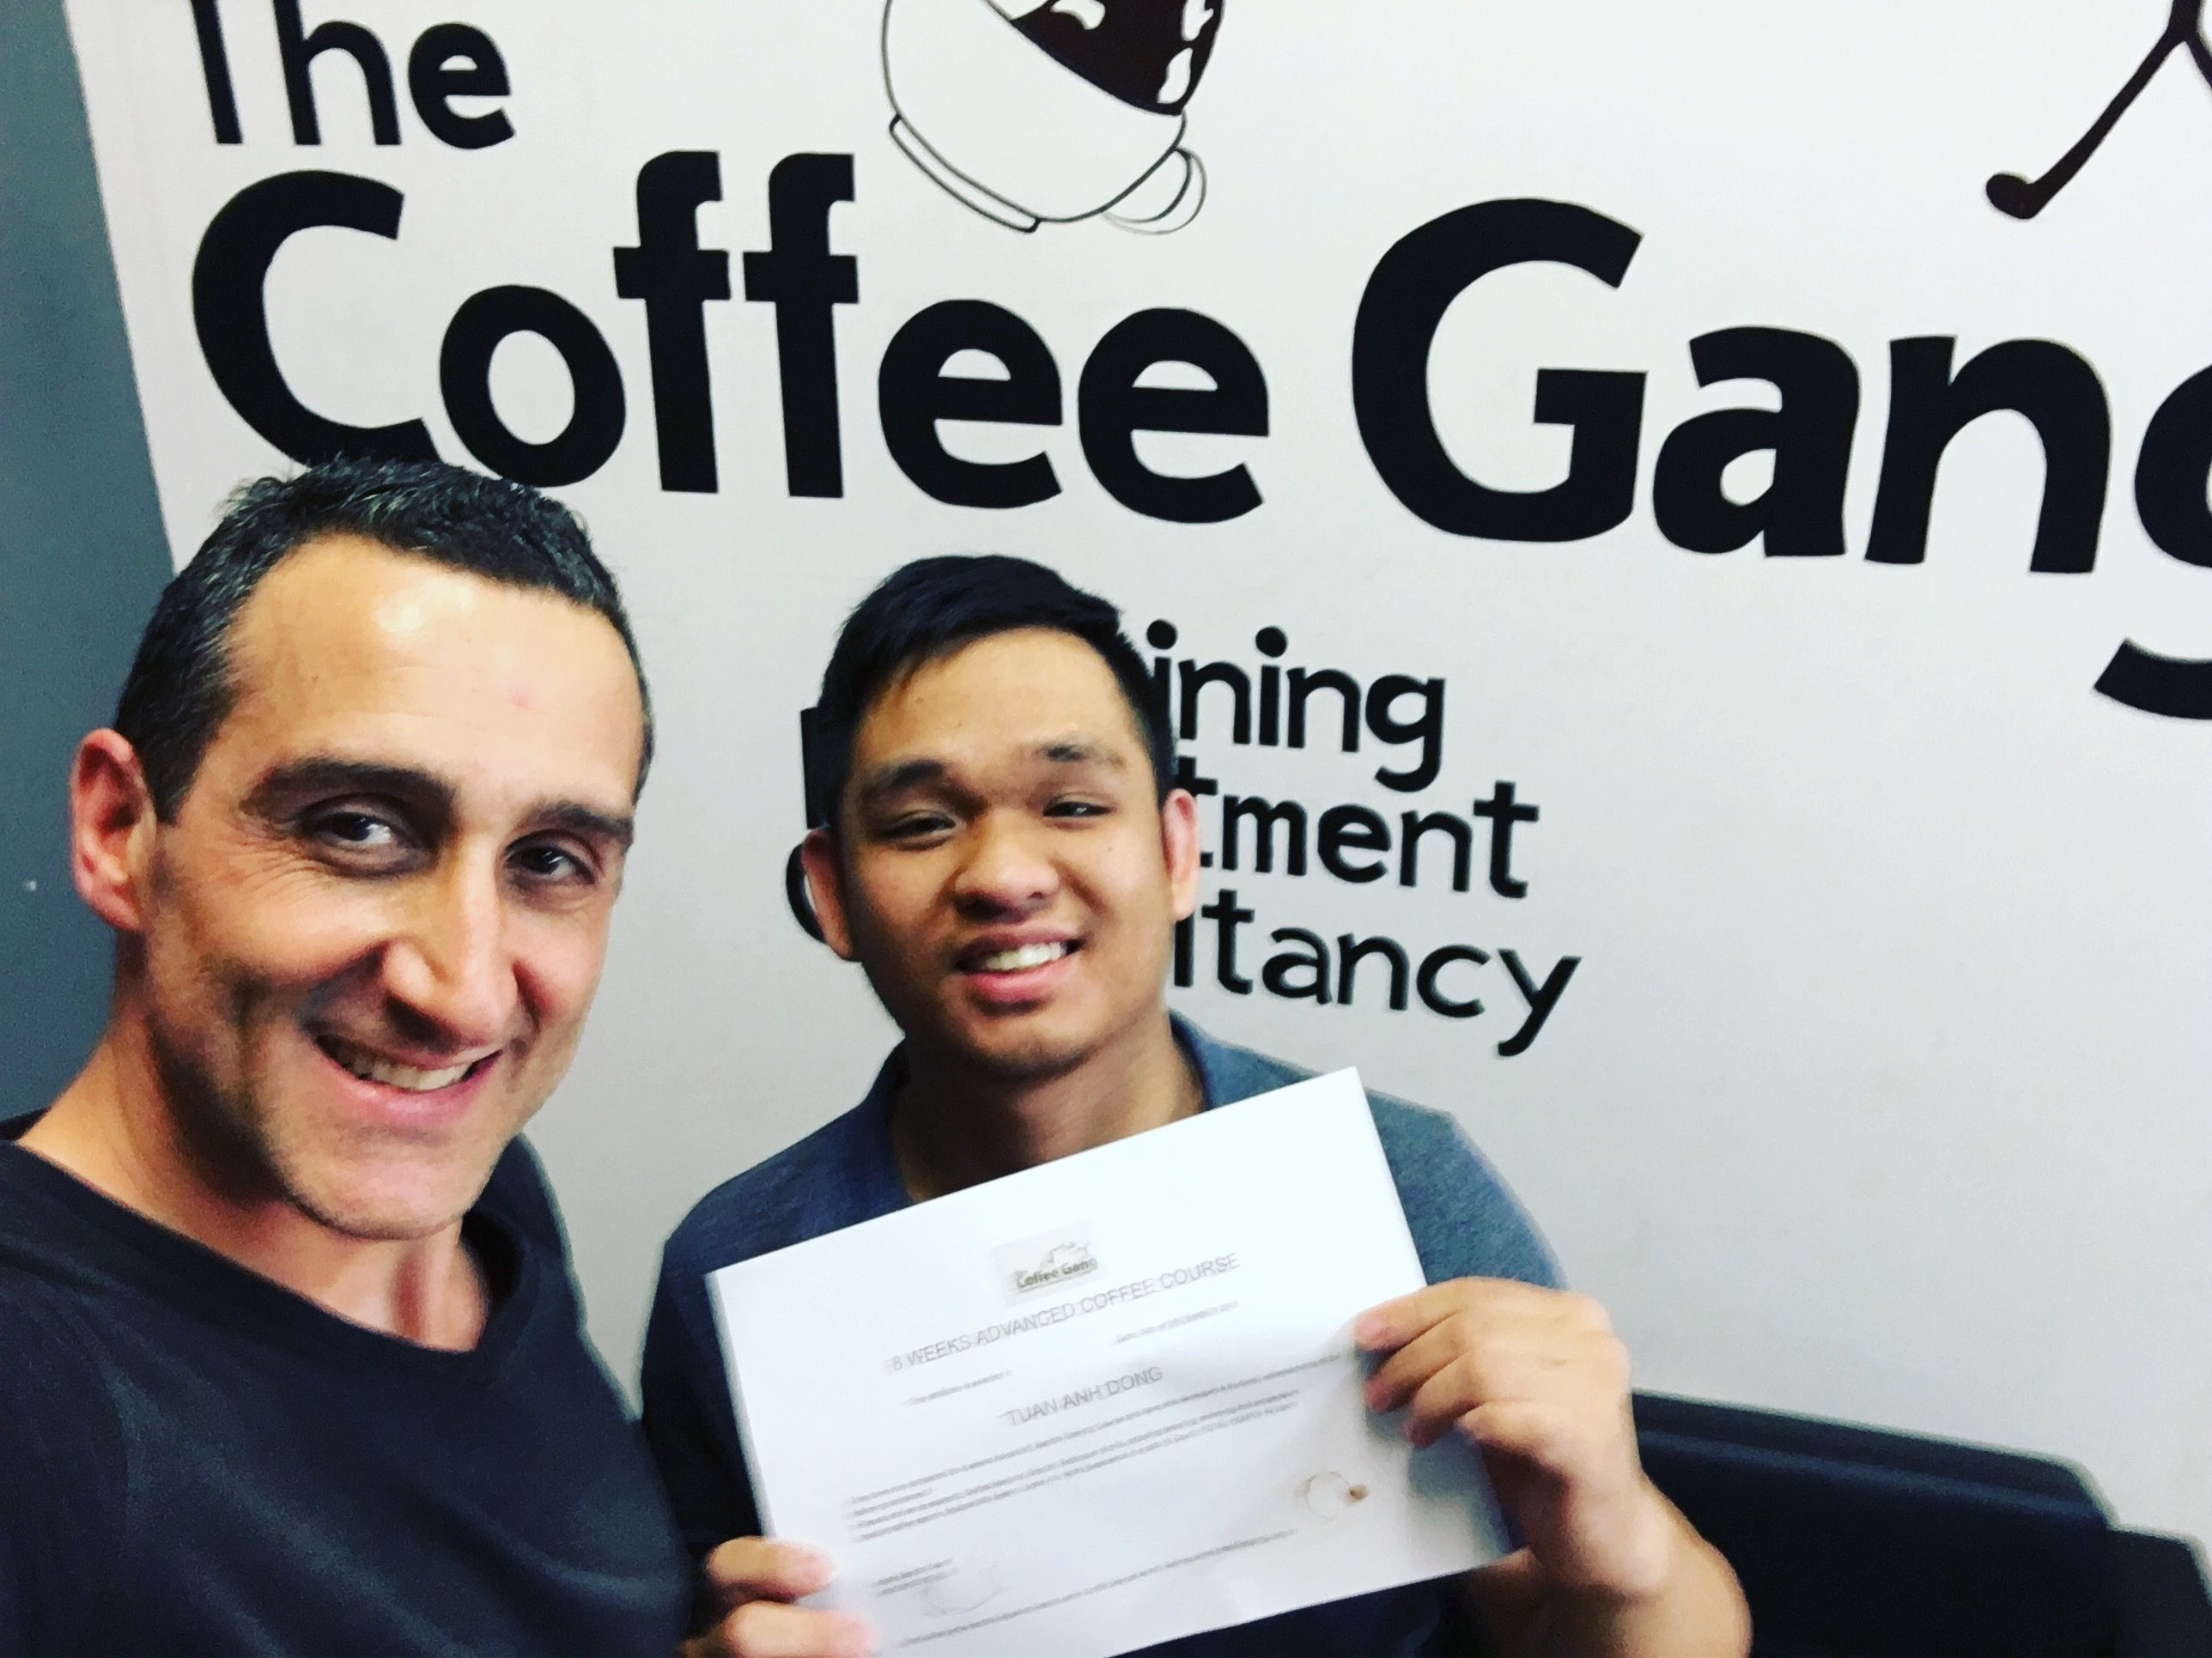 Another champion junior barista tony has just completed